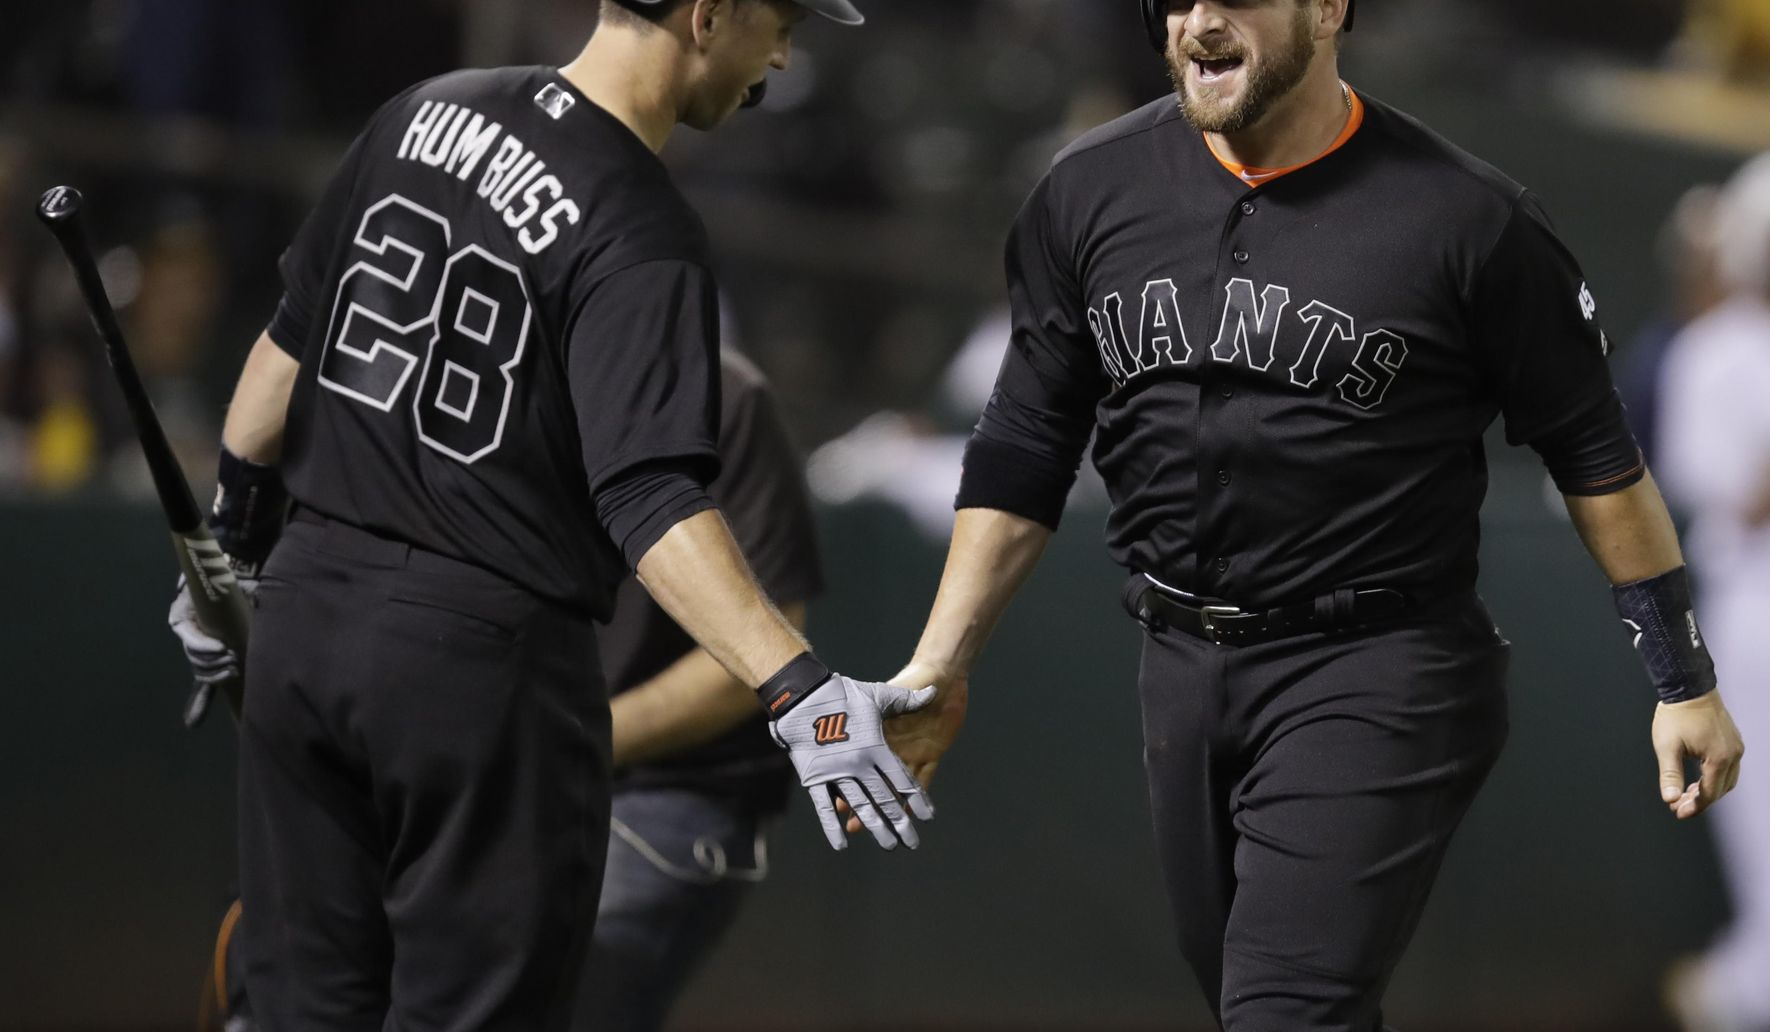 Giants_athletics_baseball_46651_c0-592-3821-2819_s1770x1032